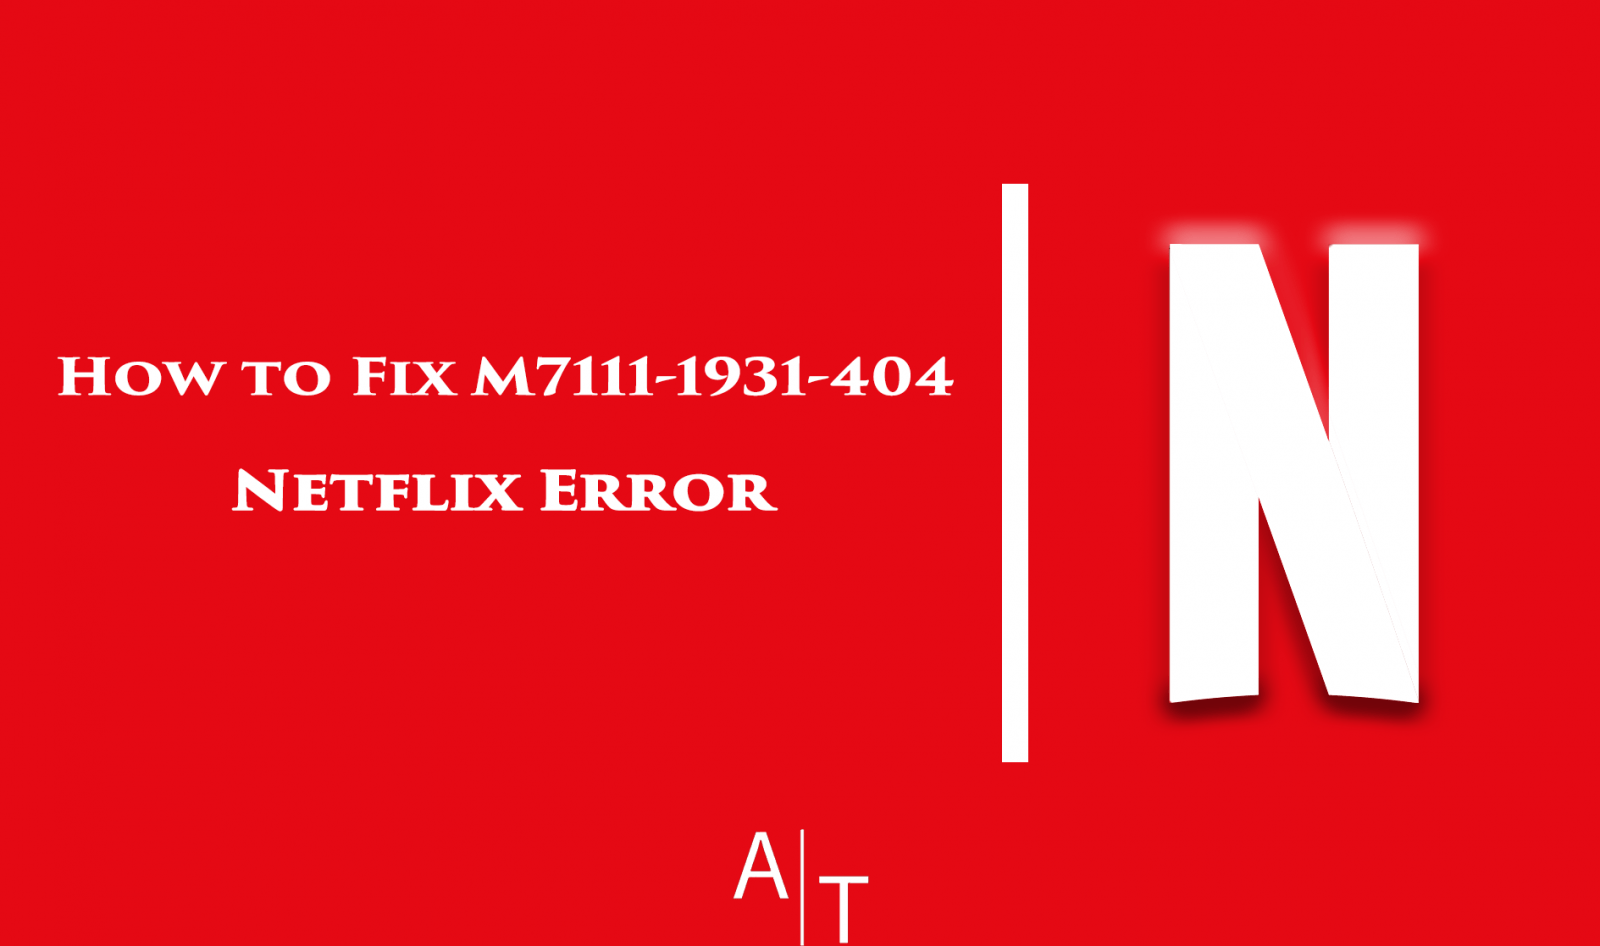 How to Fix M7111-1931-404 Netflix Error